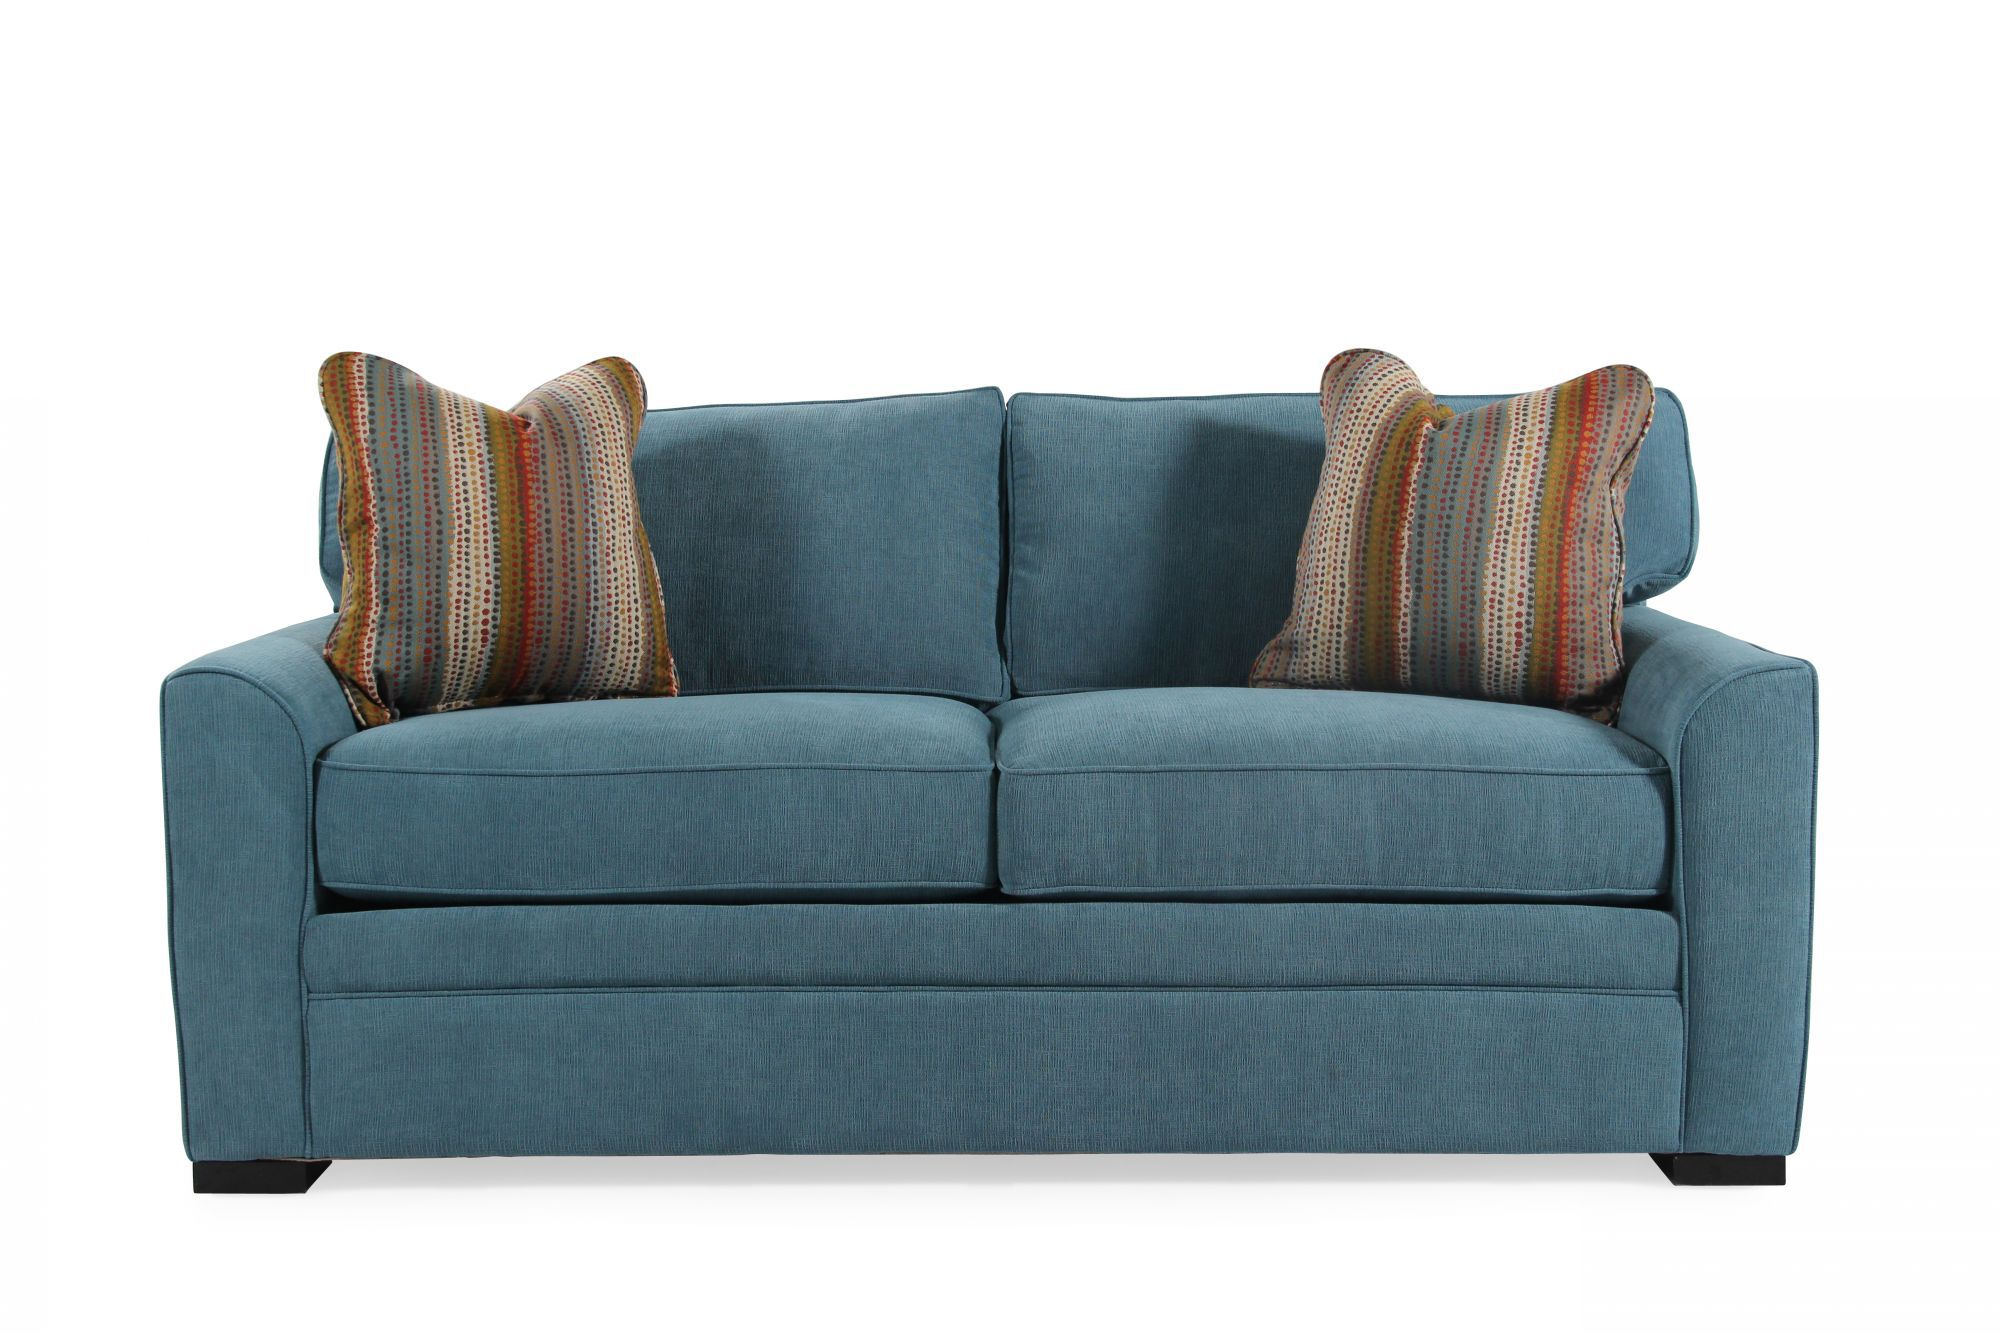 sofa foam online serta upholstery sectional jonathan louis blissful blue full memory sleeper